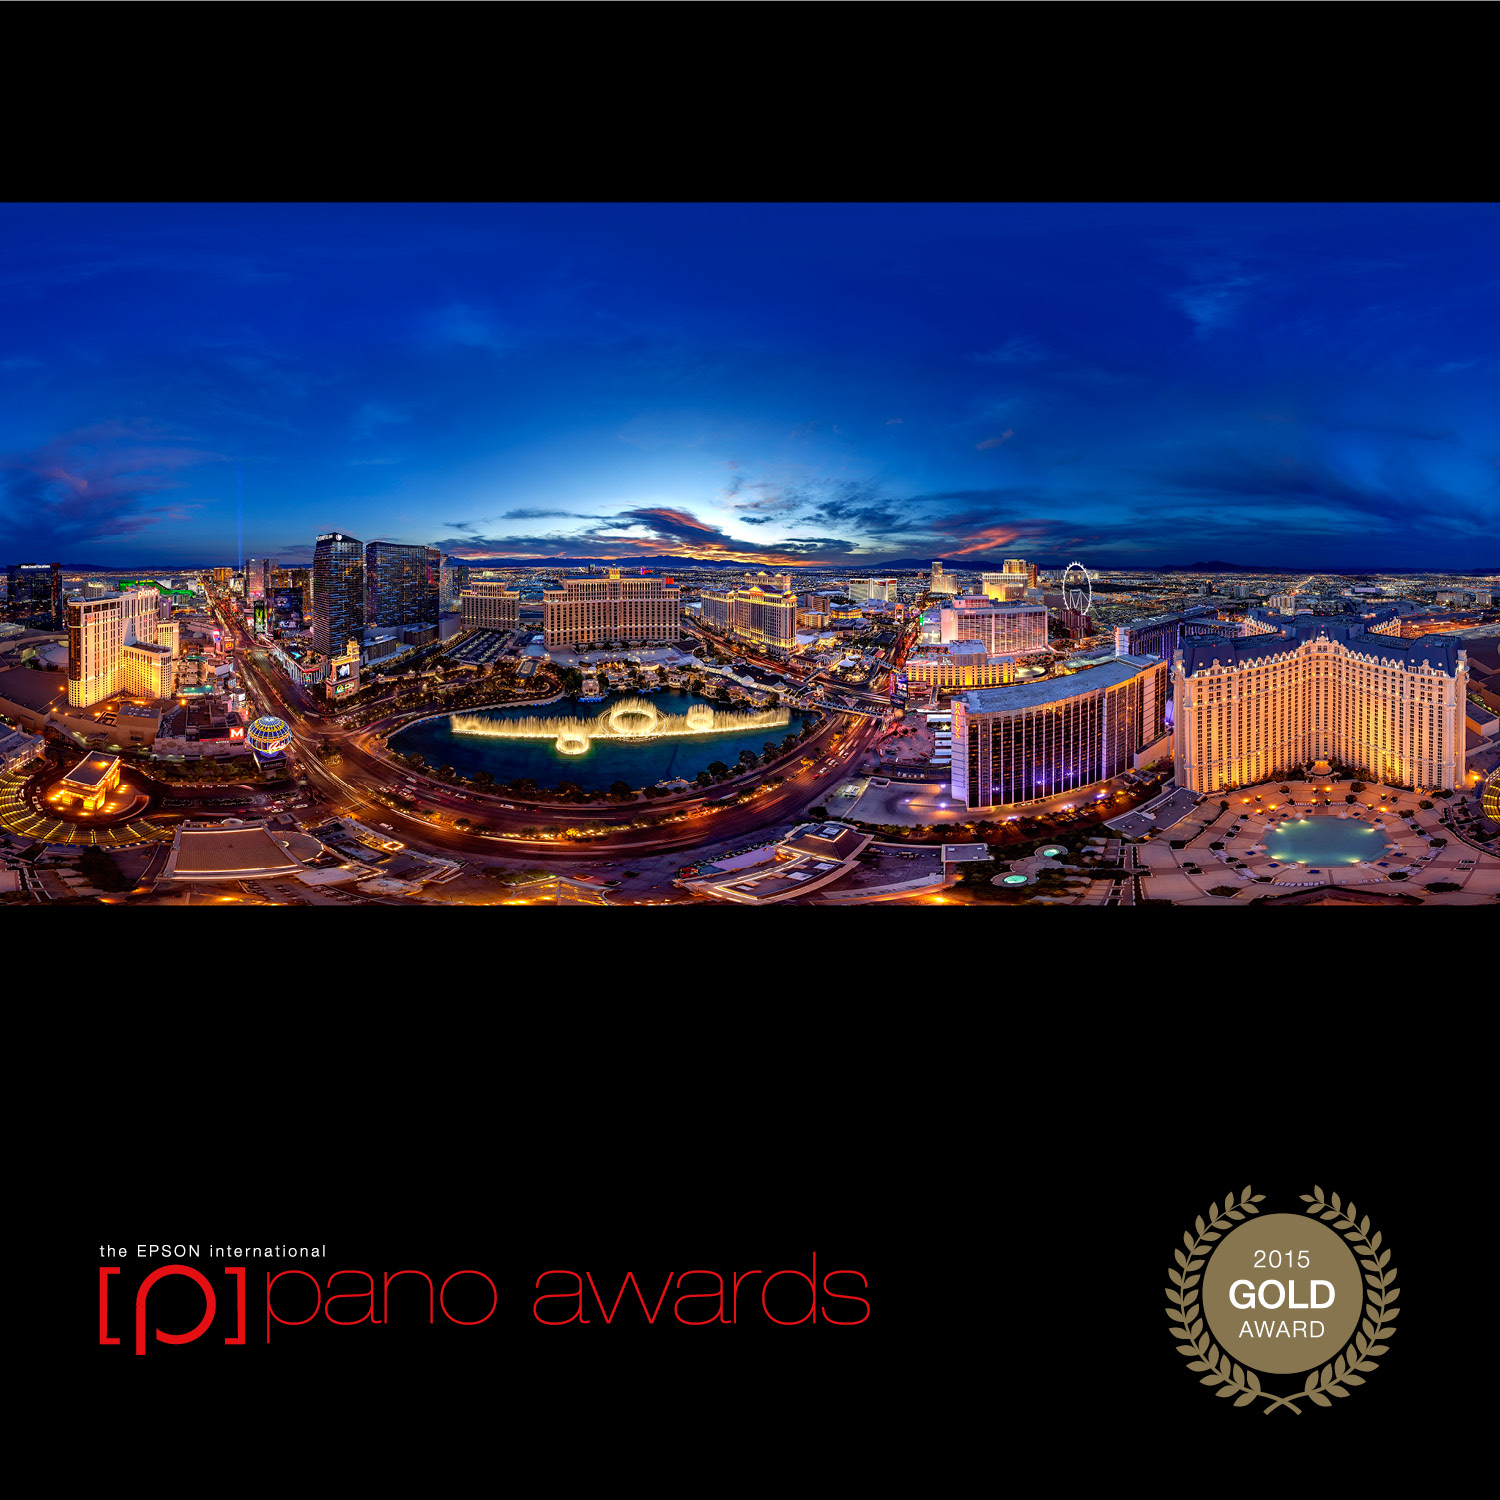 gold medal on epson pano awards